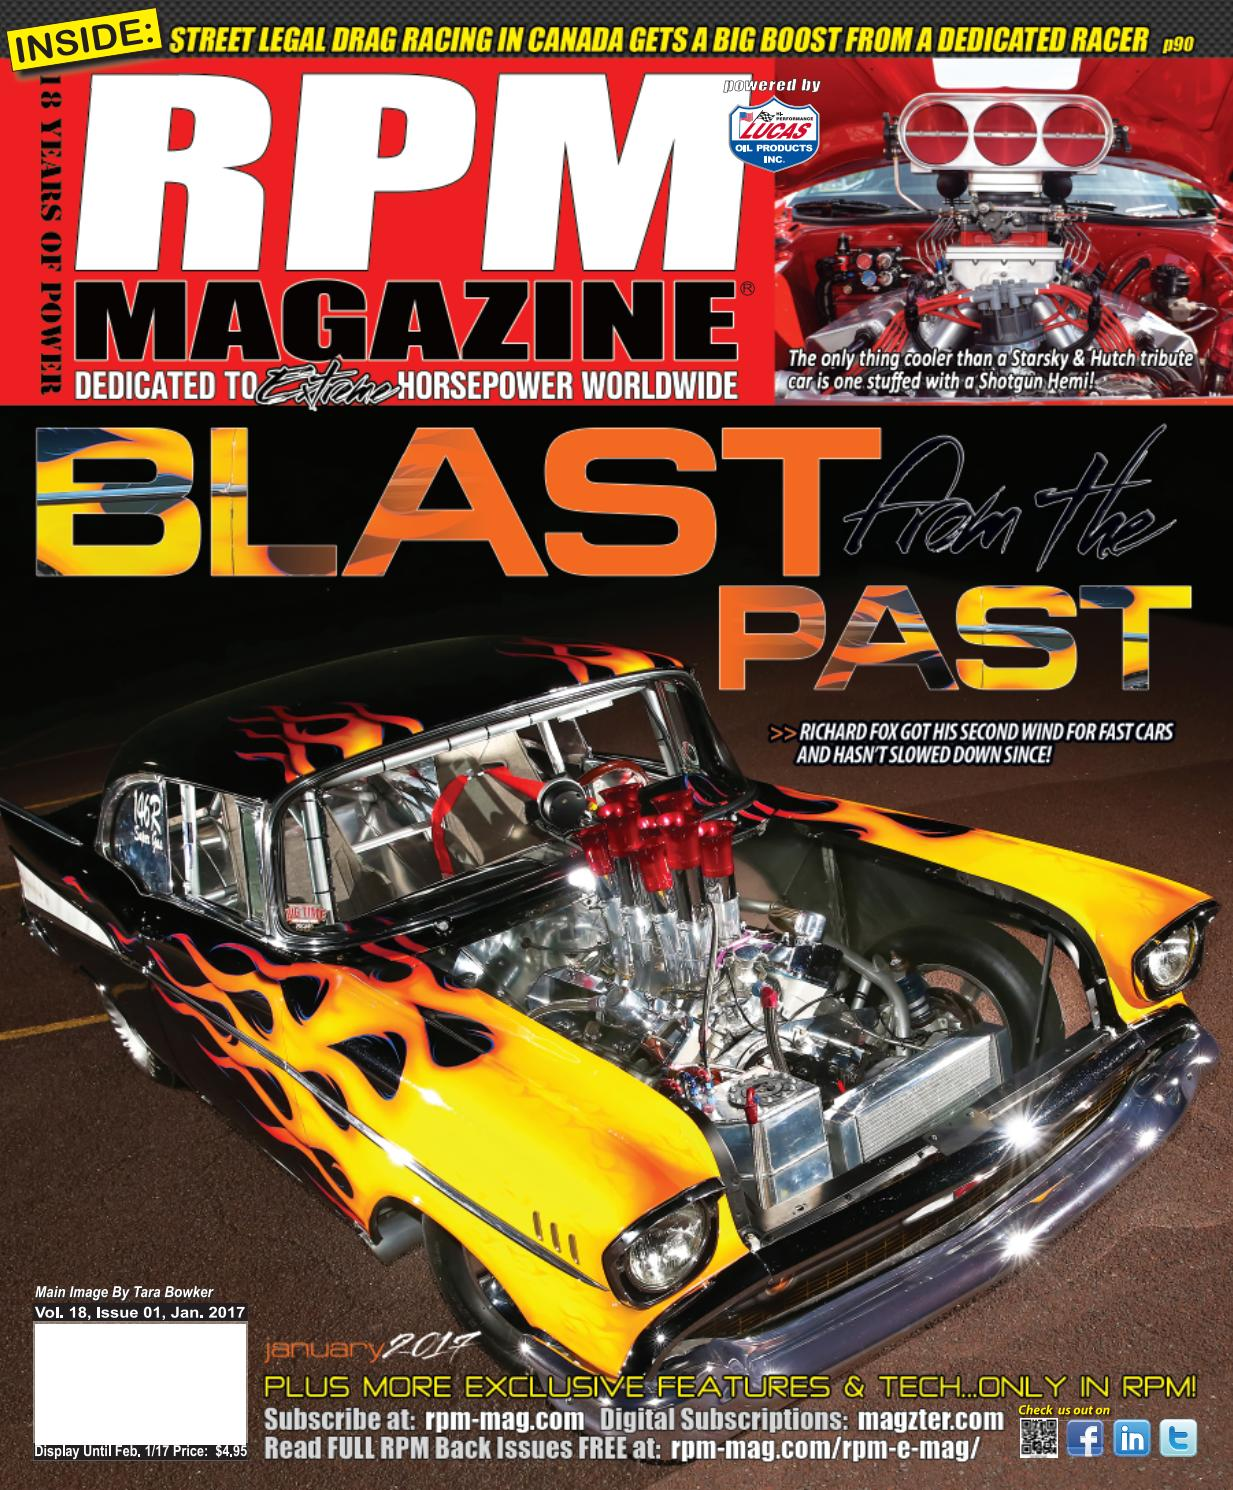 RPM JAN 2017 by RPM Magazine - issuu